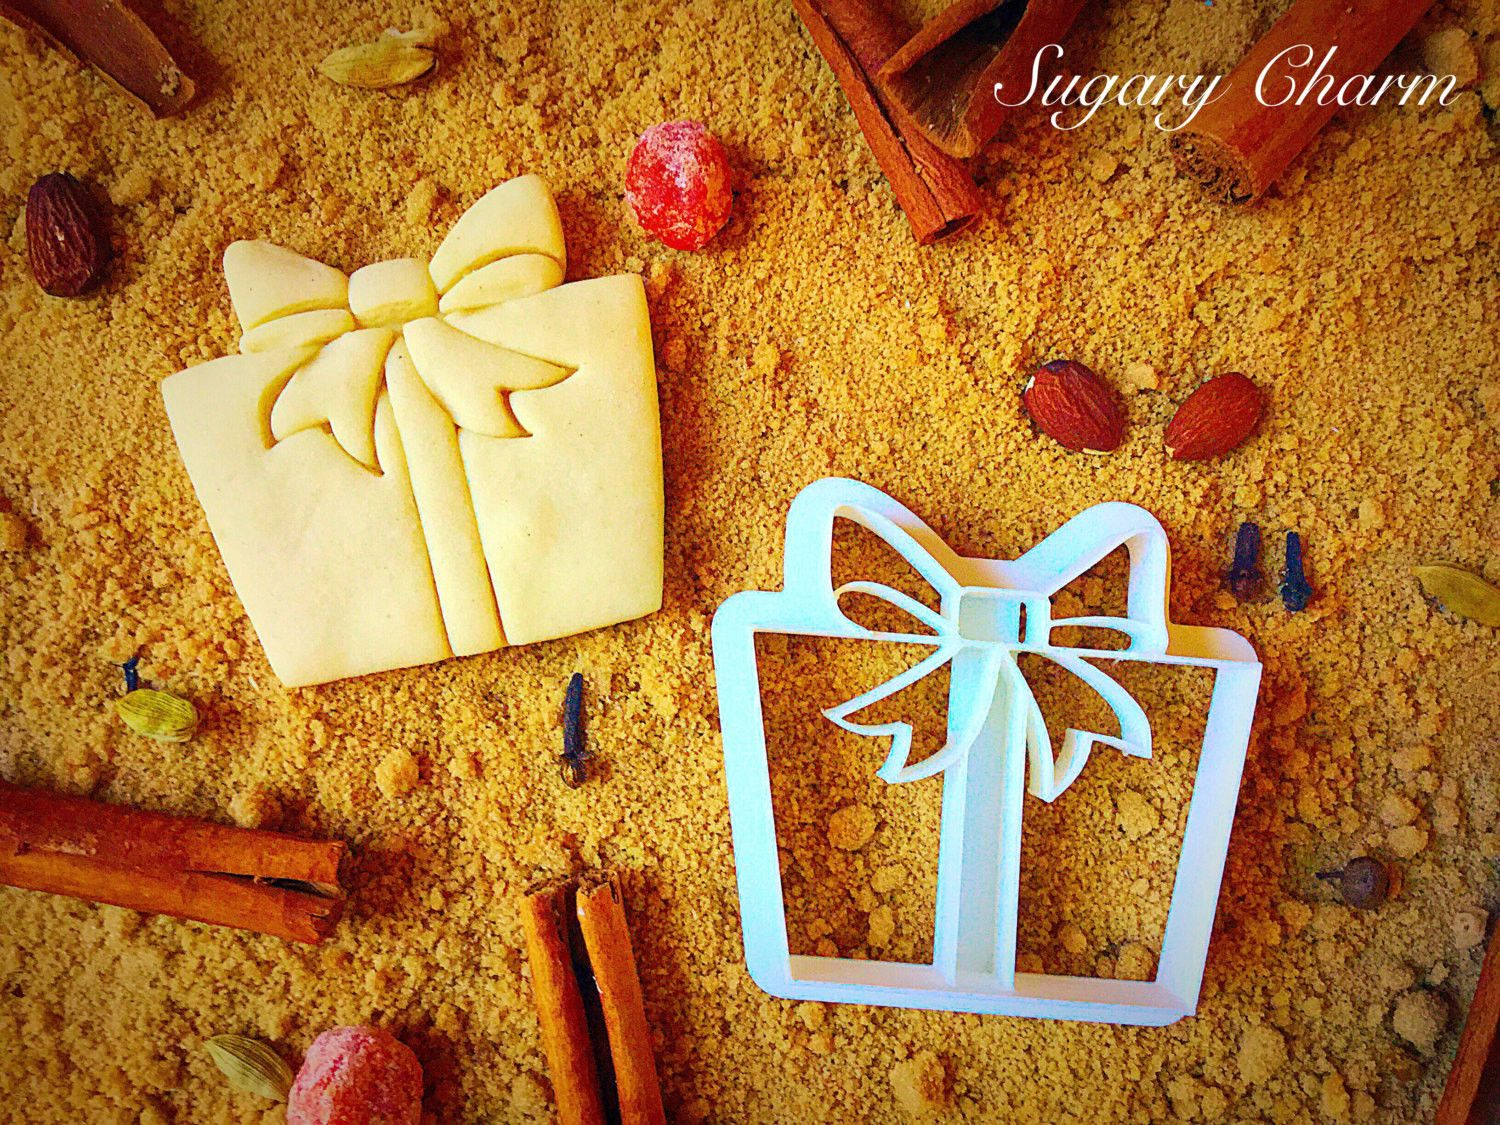 Show off your great taste in delectable gifts with our Christmas Gift cookie cutter. Showcasing a beautiful bow, this lovely tapered box gift design is a decorating inspiration. The deep sides make fo More